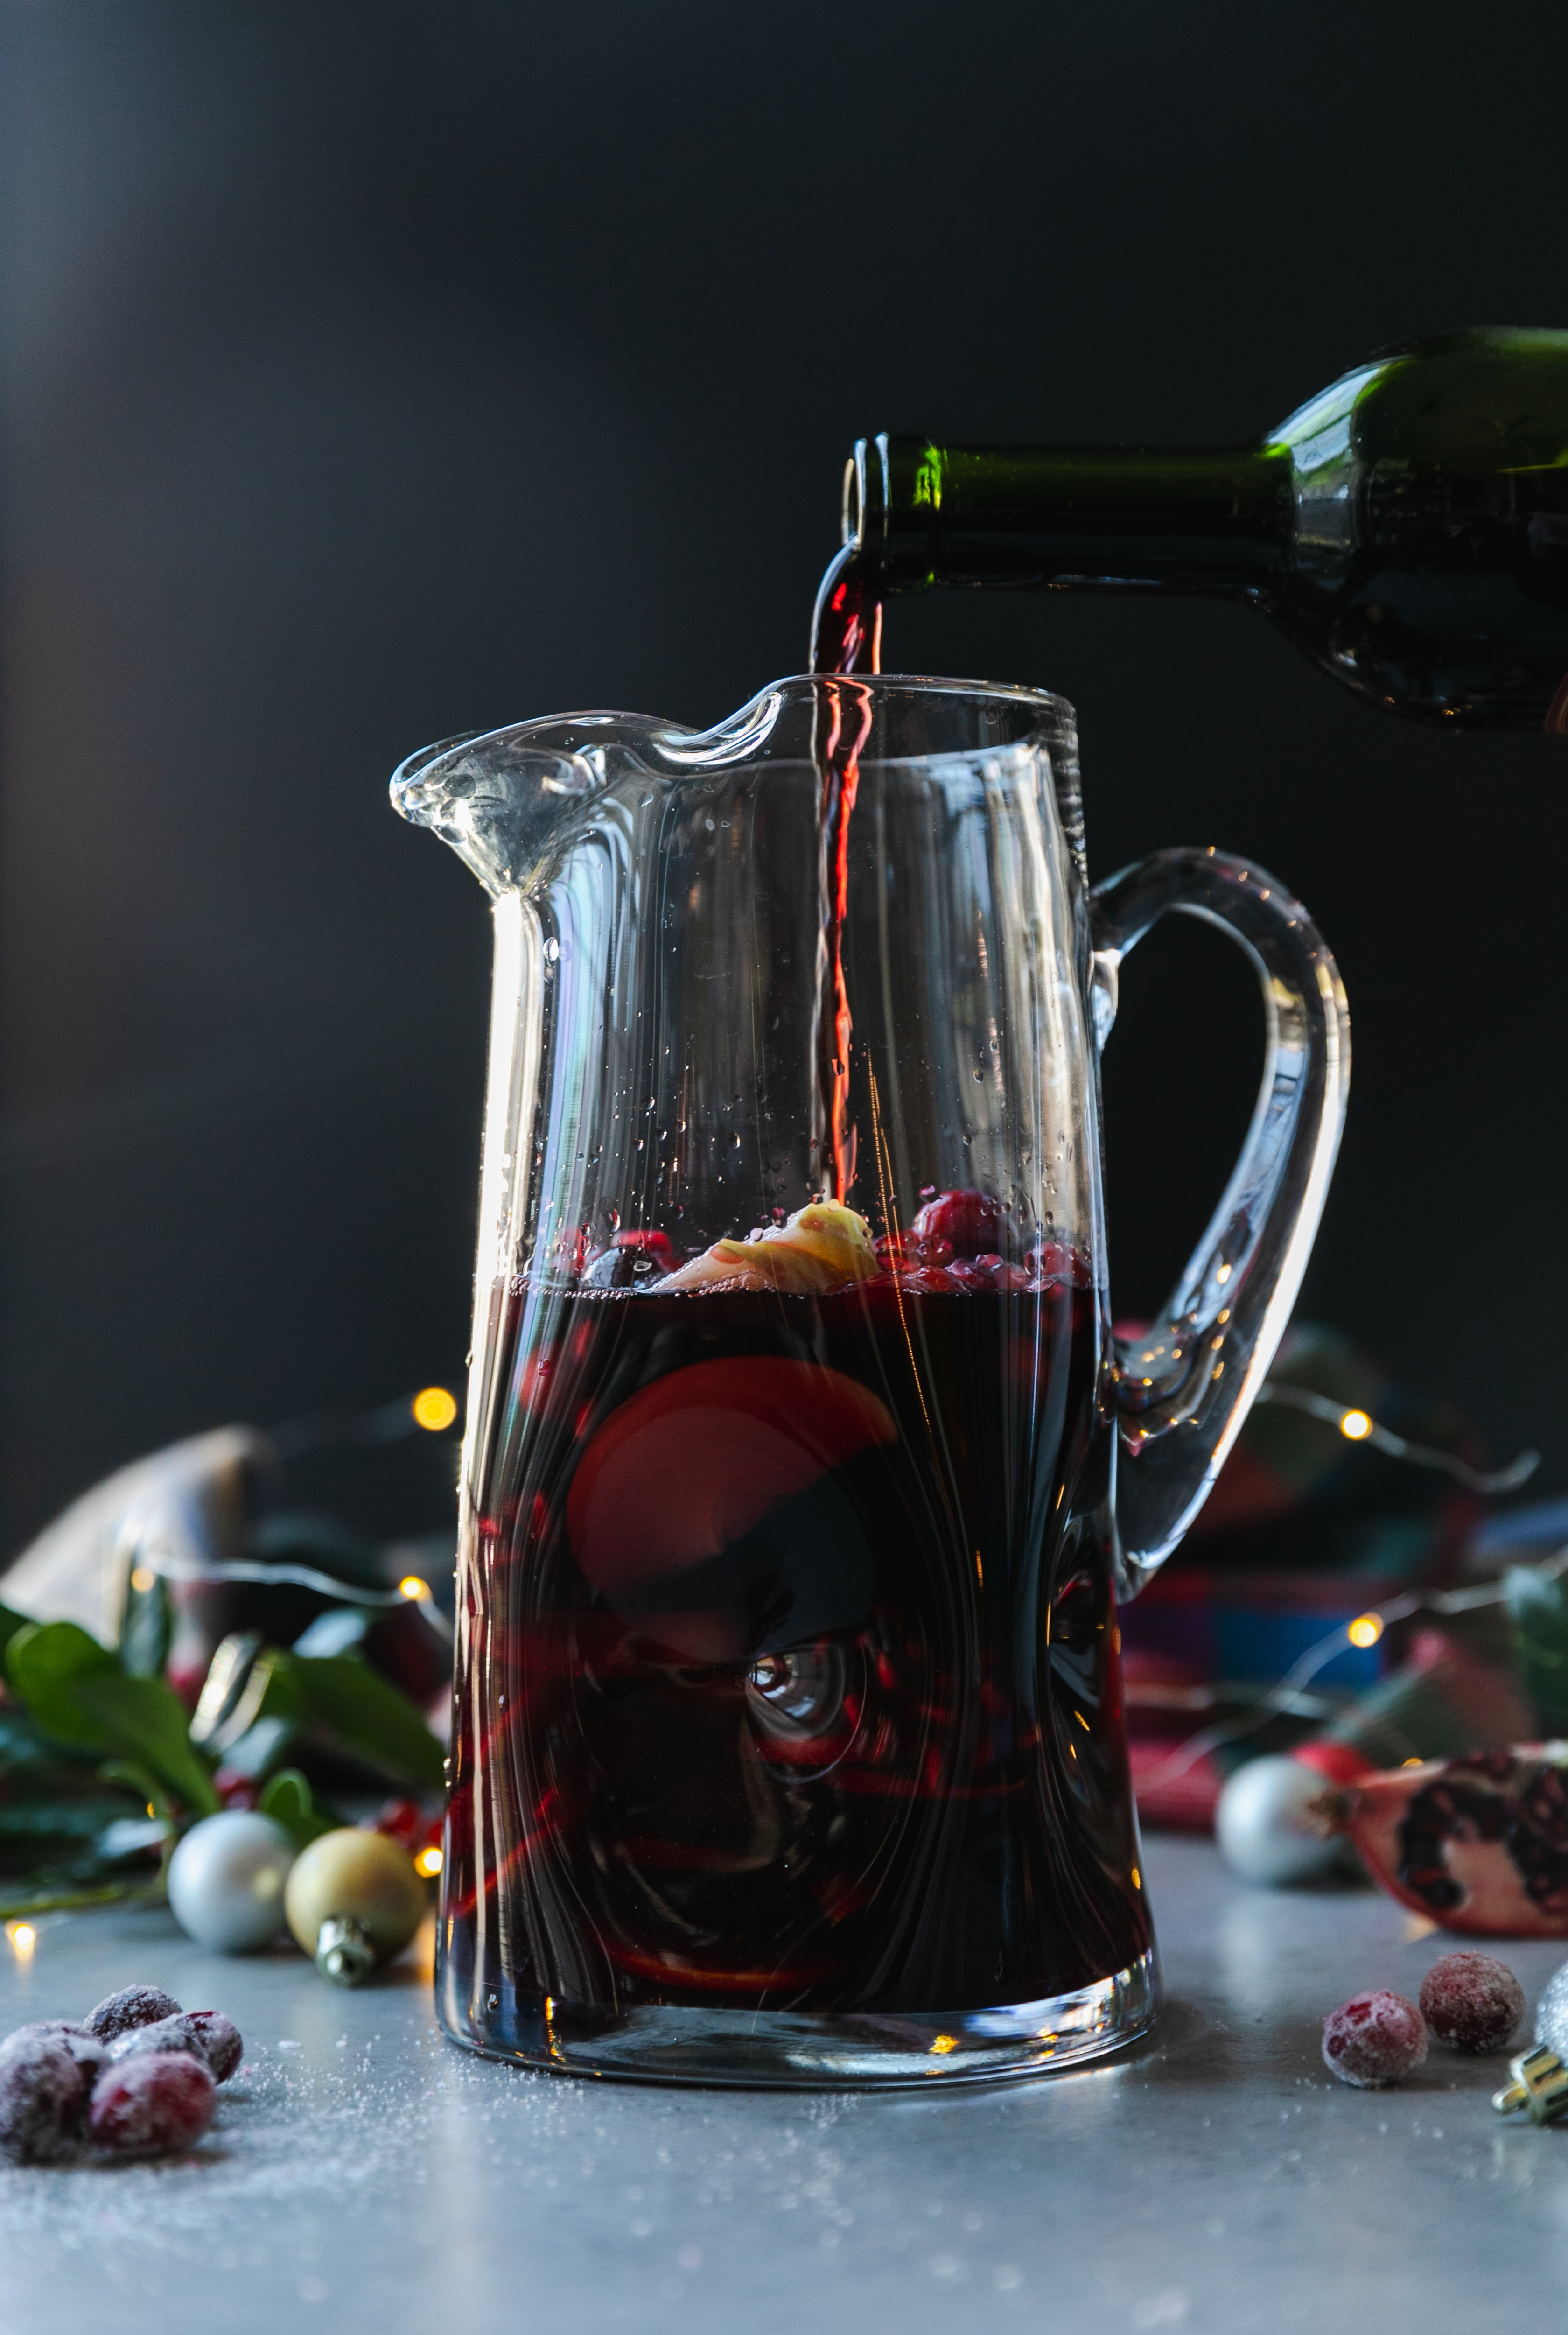 Forward facing shot of a glass pitcher filled with red sangria and red wine being poured into it with christmas ornaments, a plaid scarf, and twinkle lights in the background